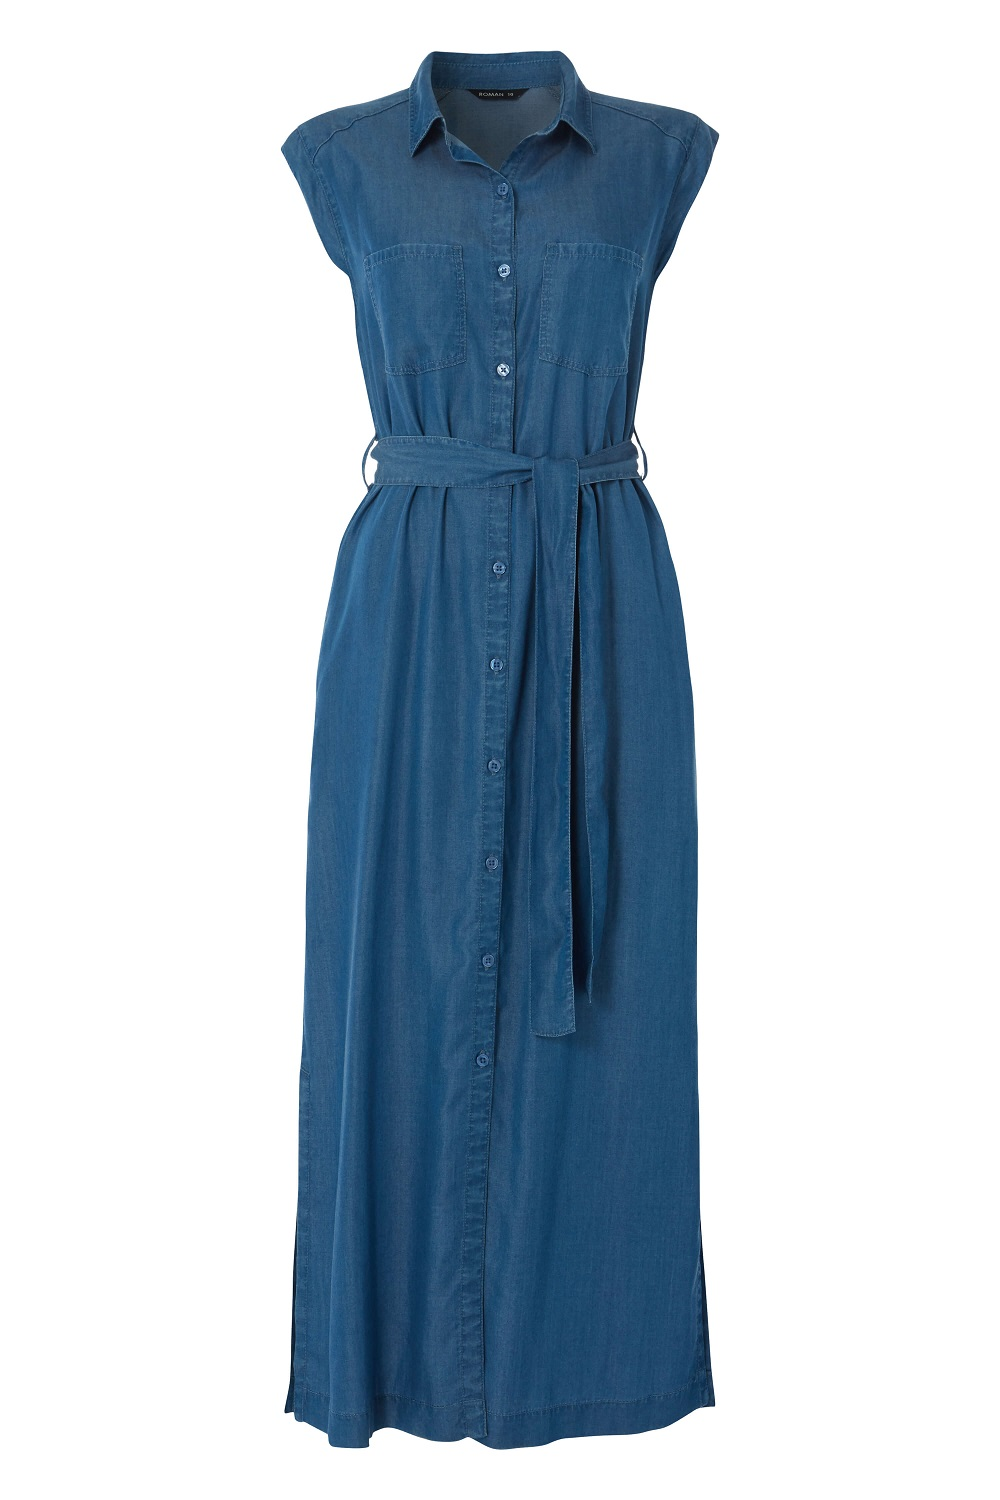 Button-Through-Midi-Denim-Dress-Women-Roman-Originals miniatuur 10